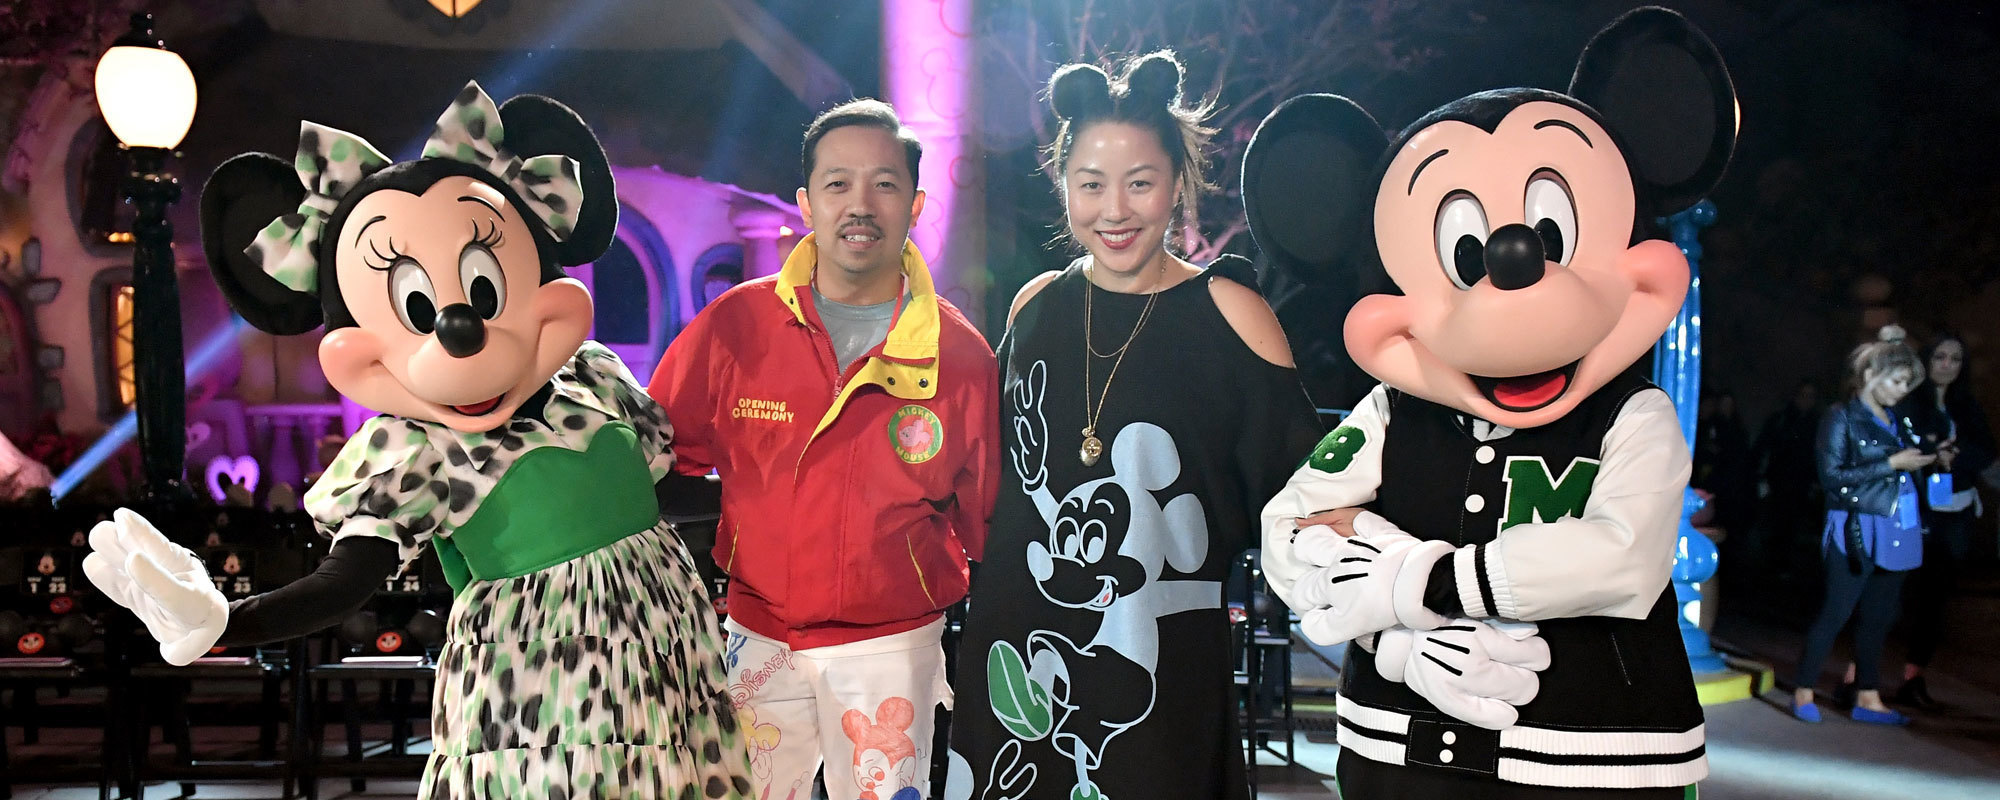 Mickey Mouse Opening Ceremony - Group